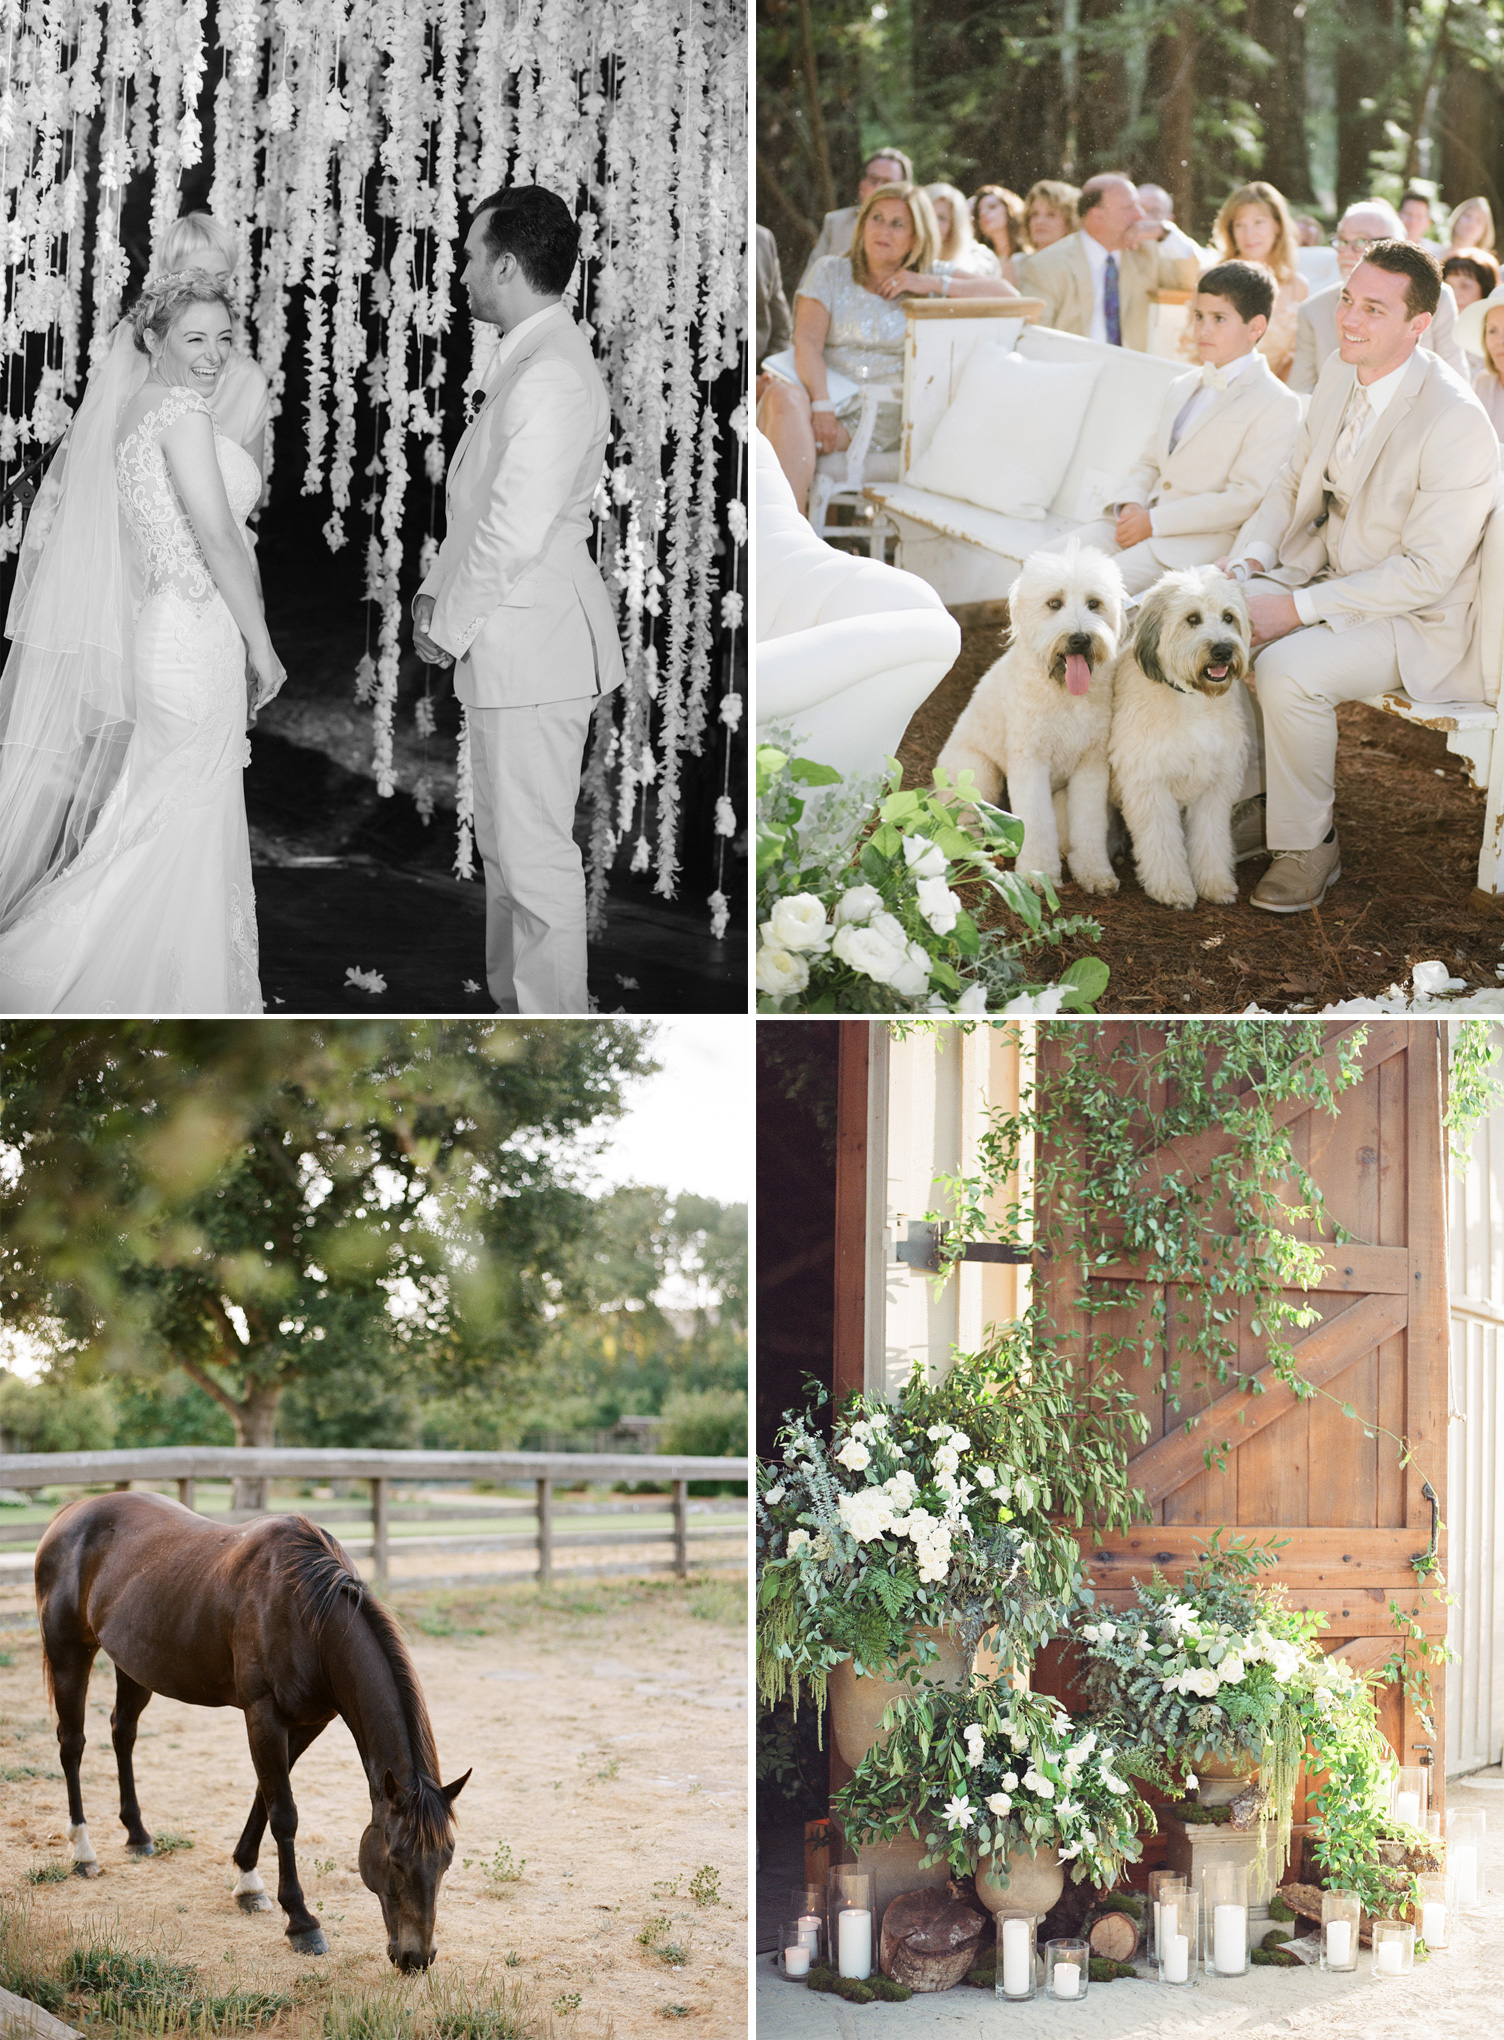 The bride giggles during the ceremony, guests watch the two get married with the labradoodles, a horse grazes on the ranch, foliage-heavy florals decorate the entrance to the barn with candles and cut logs; photos by Sylvie